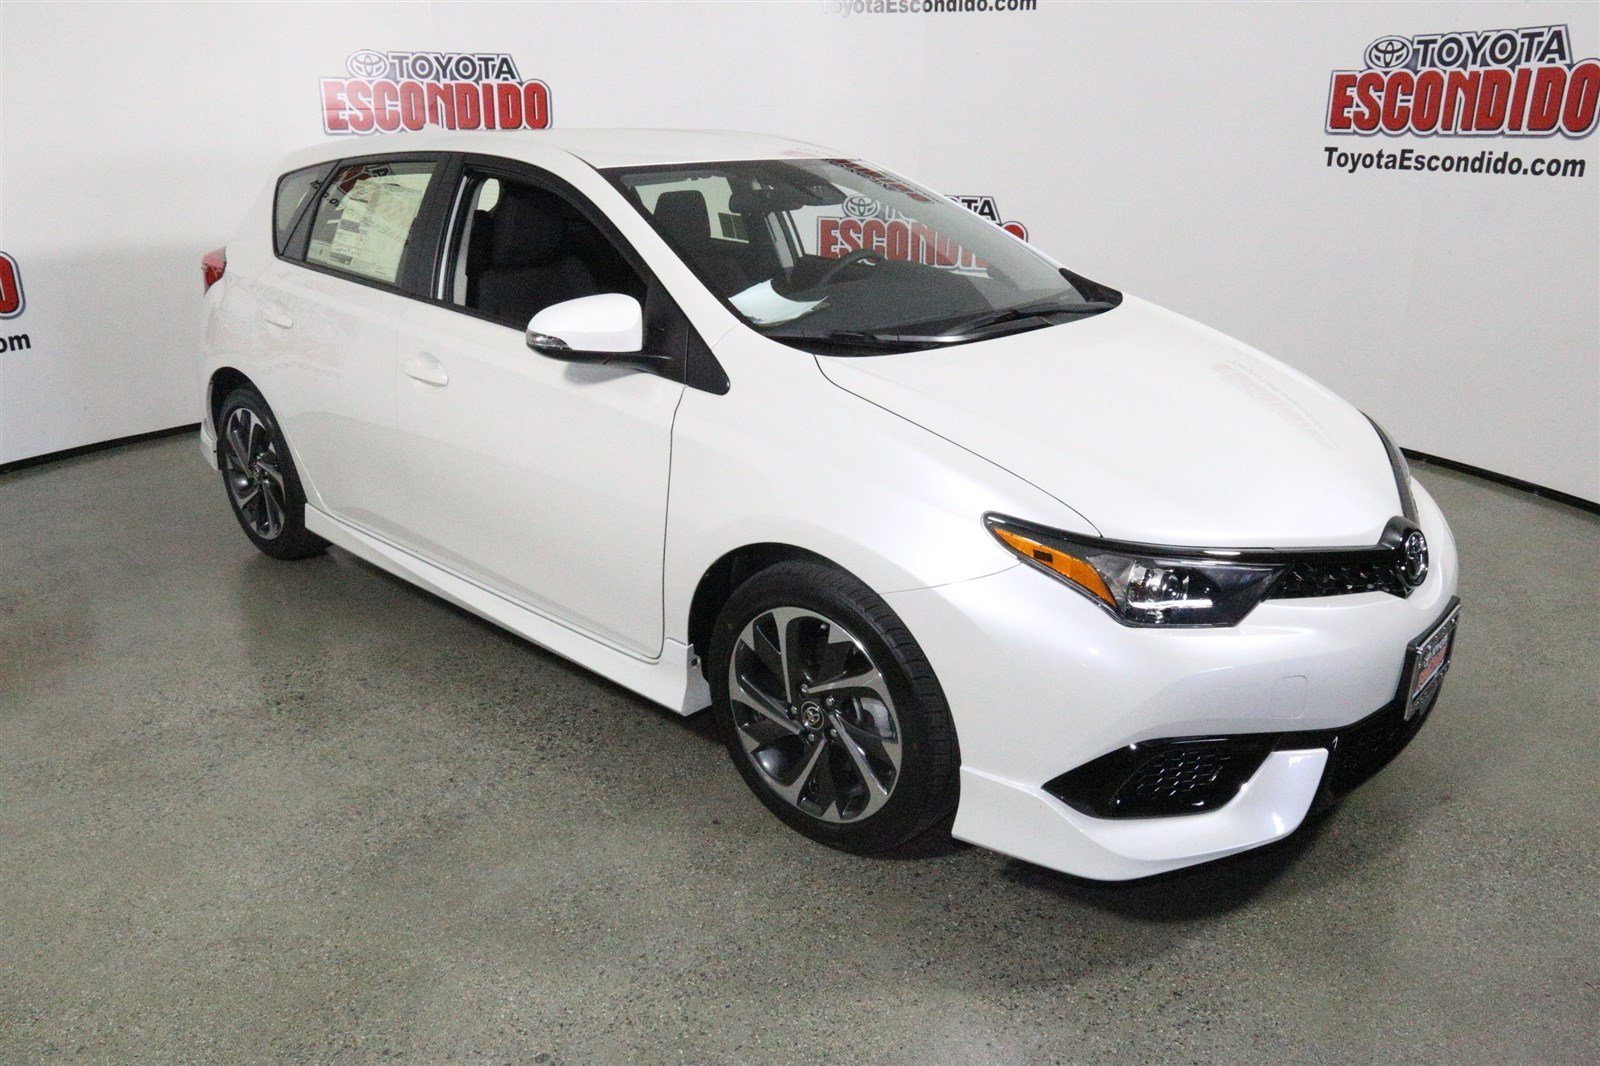 new 2017 toyota corolla im hatchback in escondido hj531318 toyota of escondido. Black Bedroom Furniture Sets. Home Design Ideas